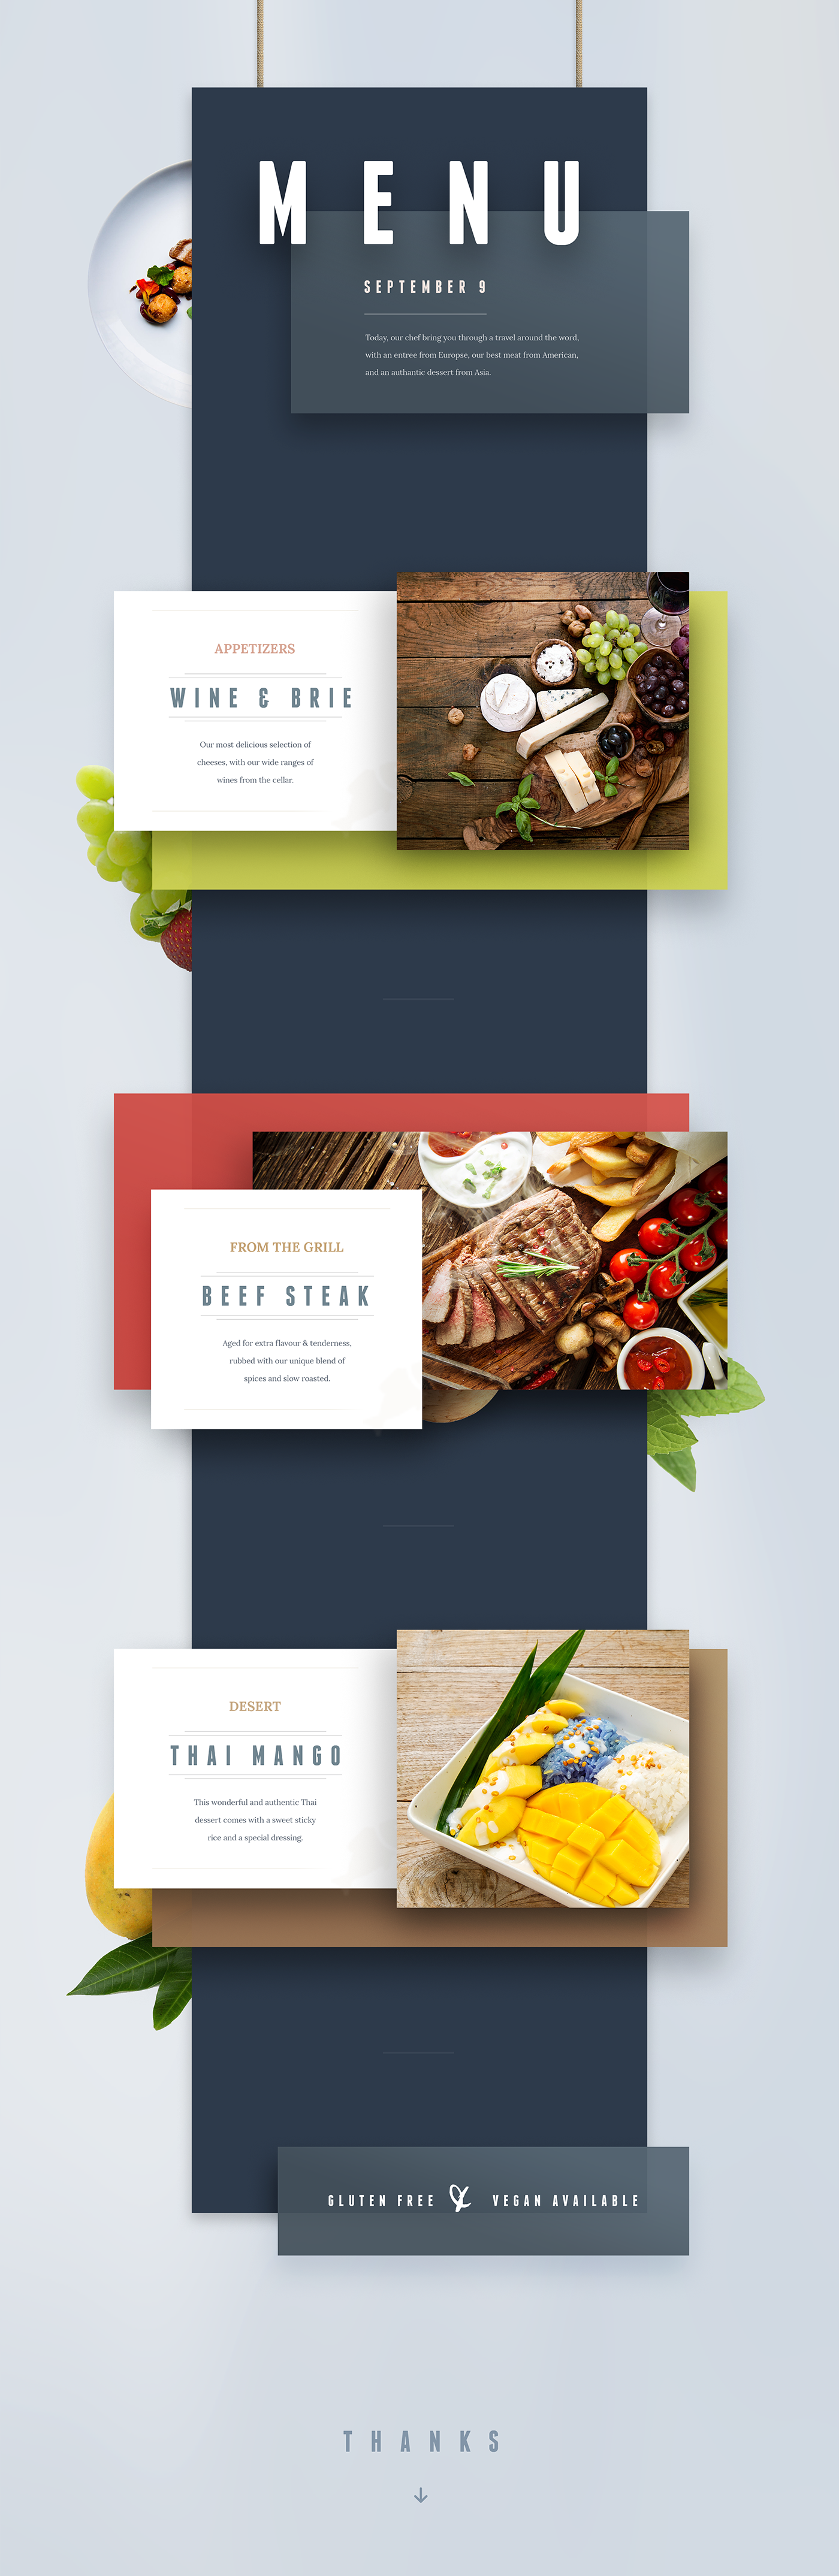 Top Notch Email Marketing Suggestions To Help Your Business Web App Design Infographic Design Web Layout Design